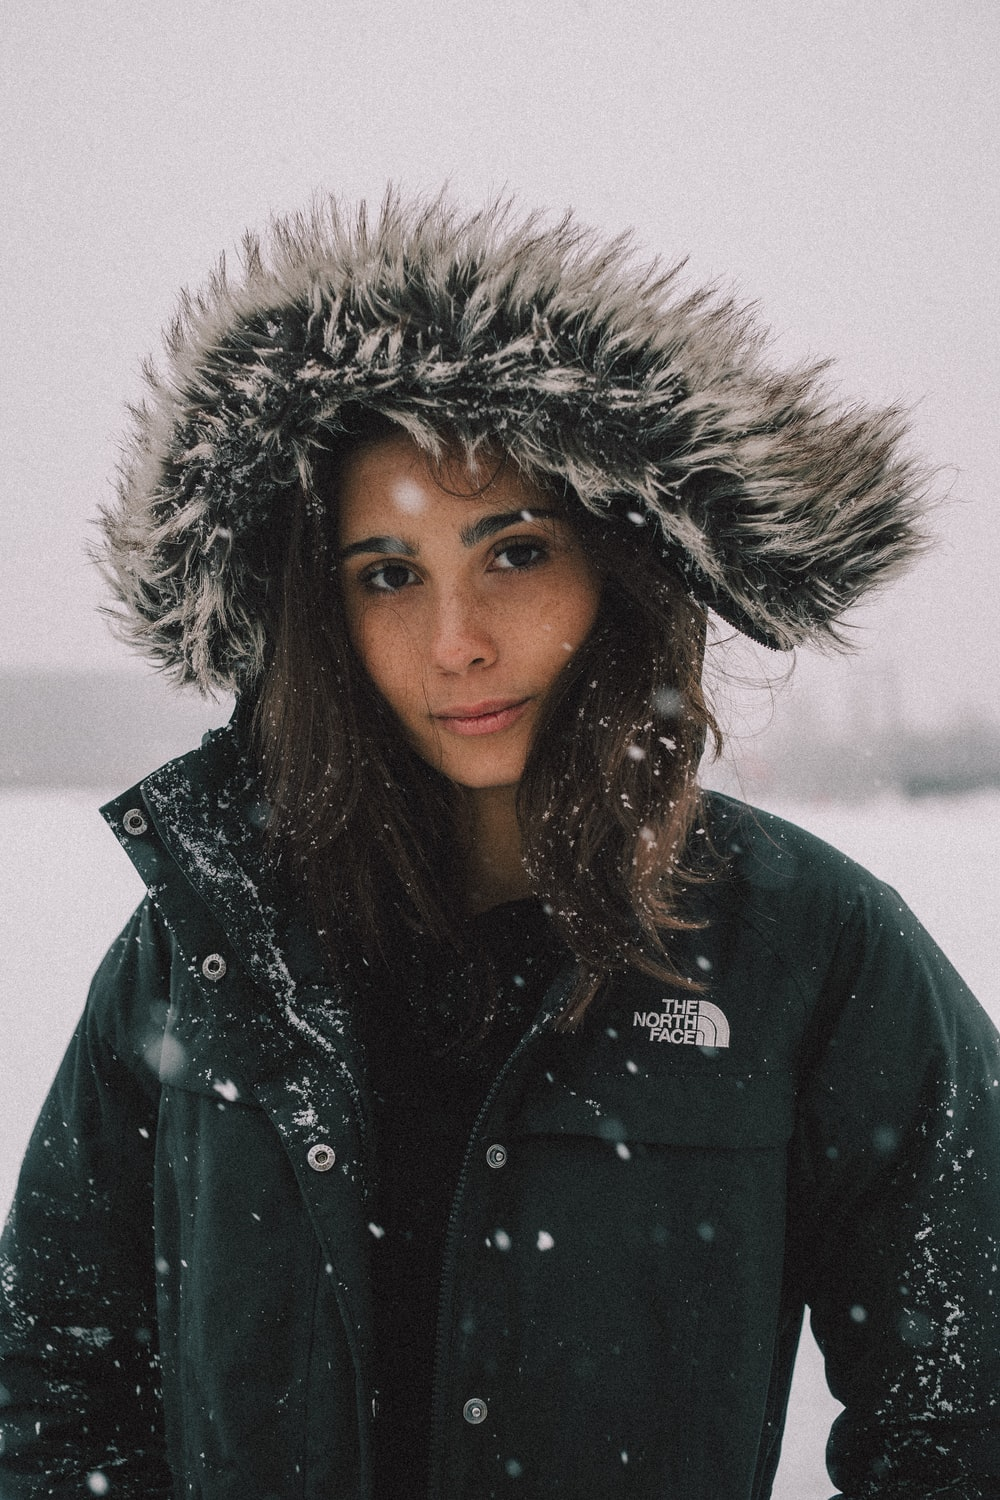 woman in black and white The North Face faux fur coat under snow